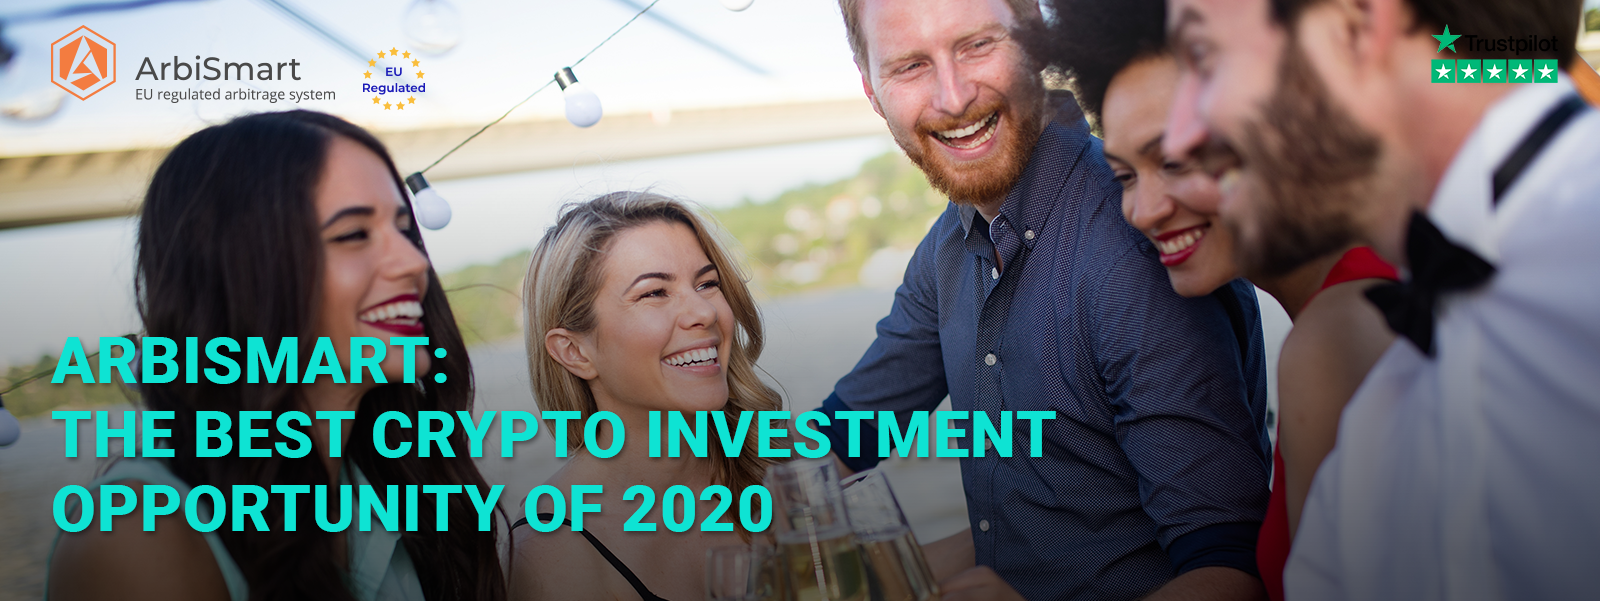 Best Cryptos For 2021 ArbiSmart: The Best Crypto Investment Opportunity of 2020 2021